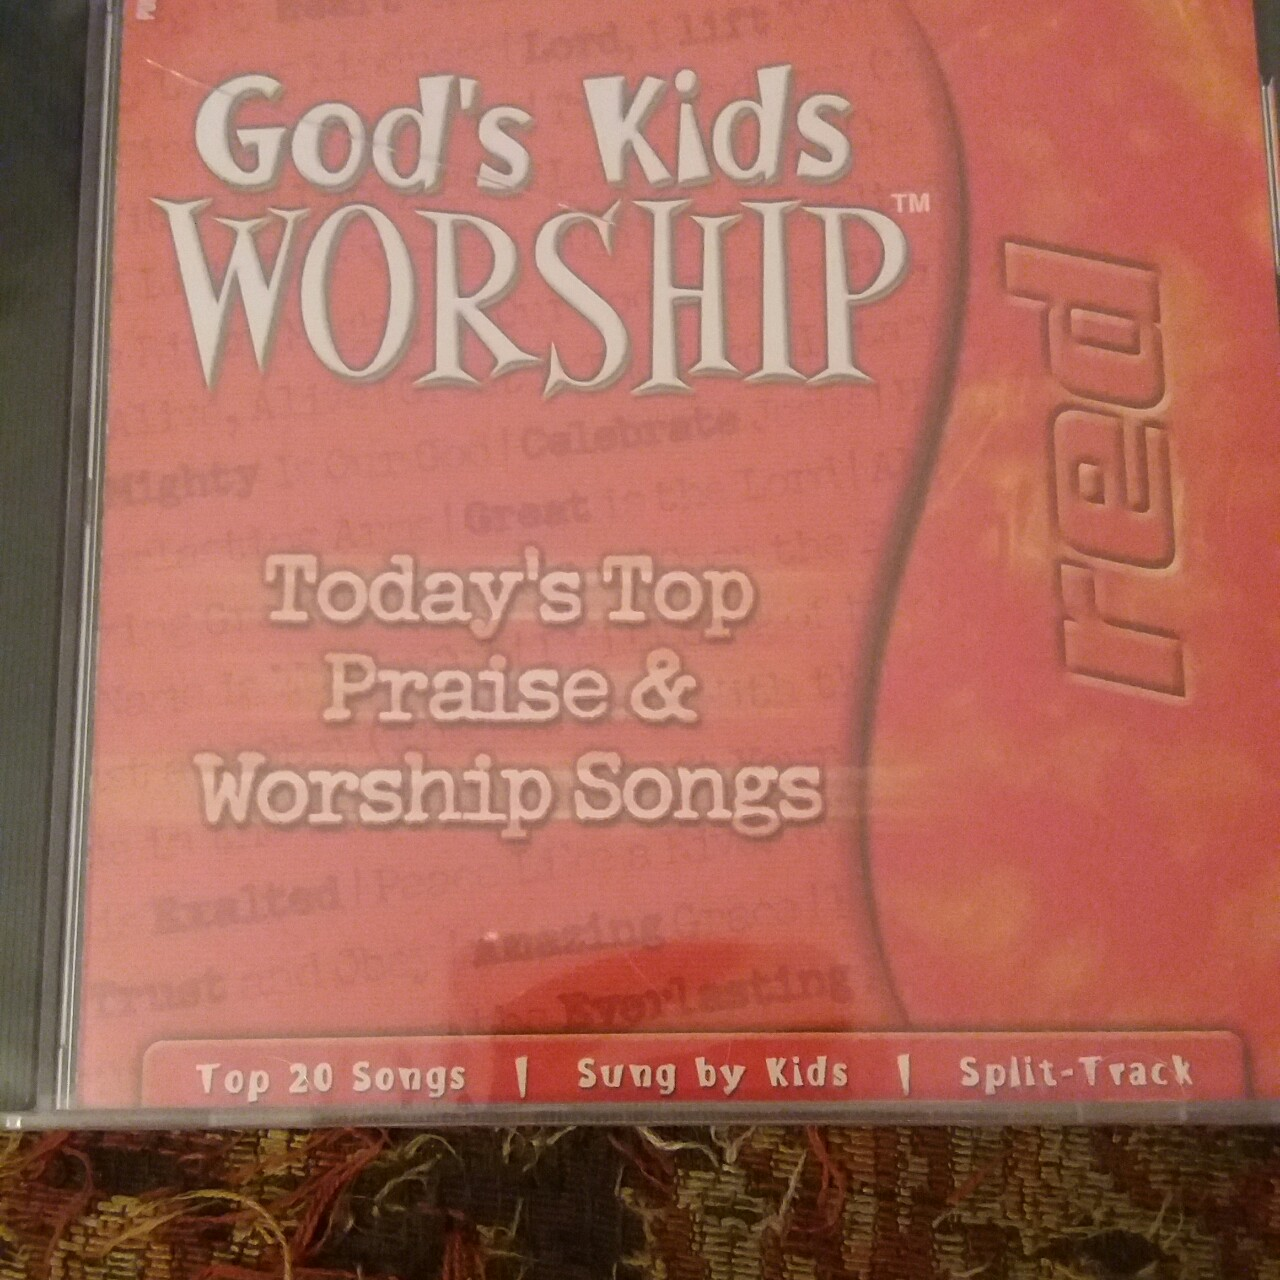 GOD'S KIDS WORSHIP (CD) NEW! Top 20 Songs Sung By